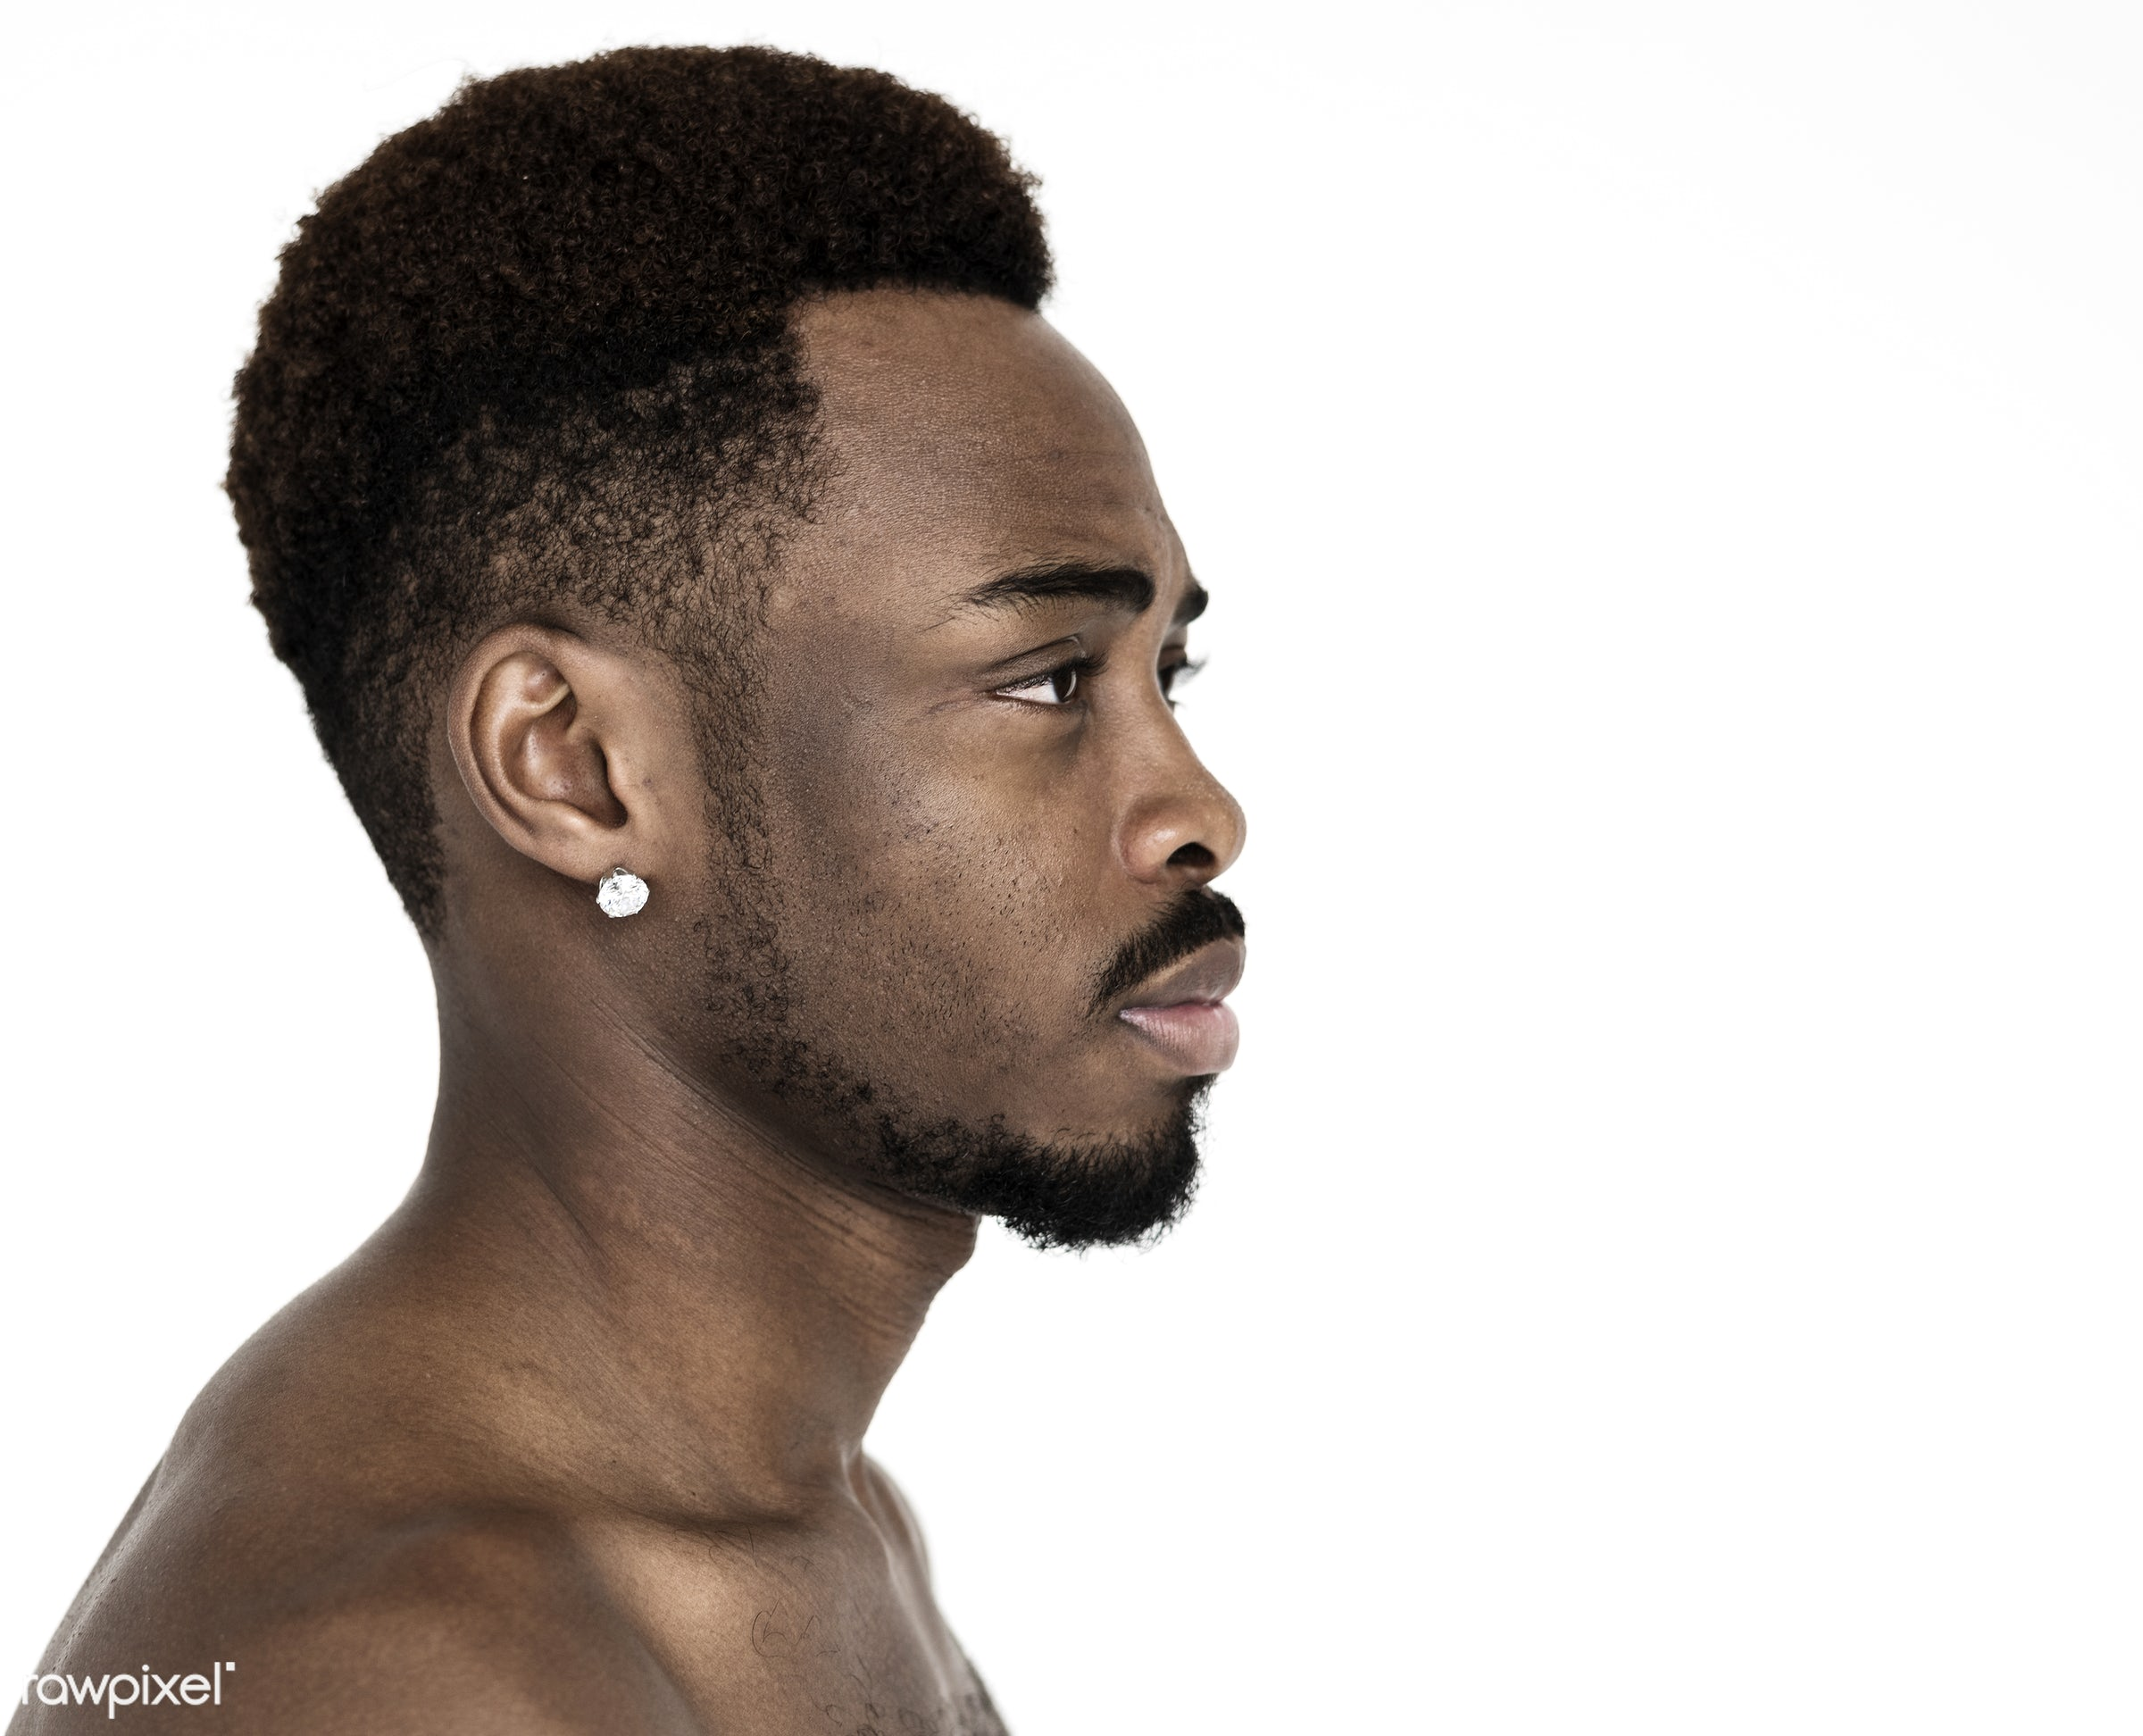 expression, studio, model, person, african, people, race, style, casual, lifestyle, man, isolated, male, descent, emotion,...